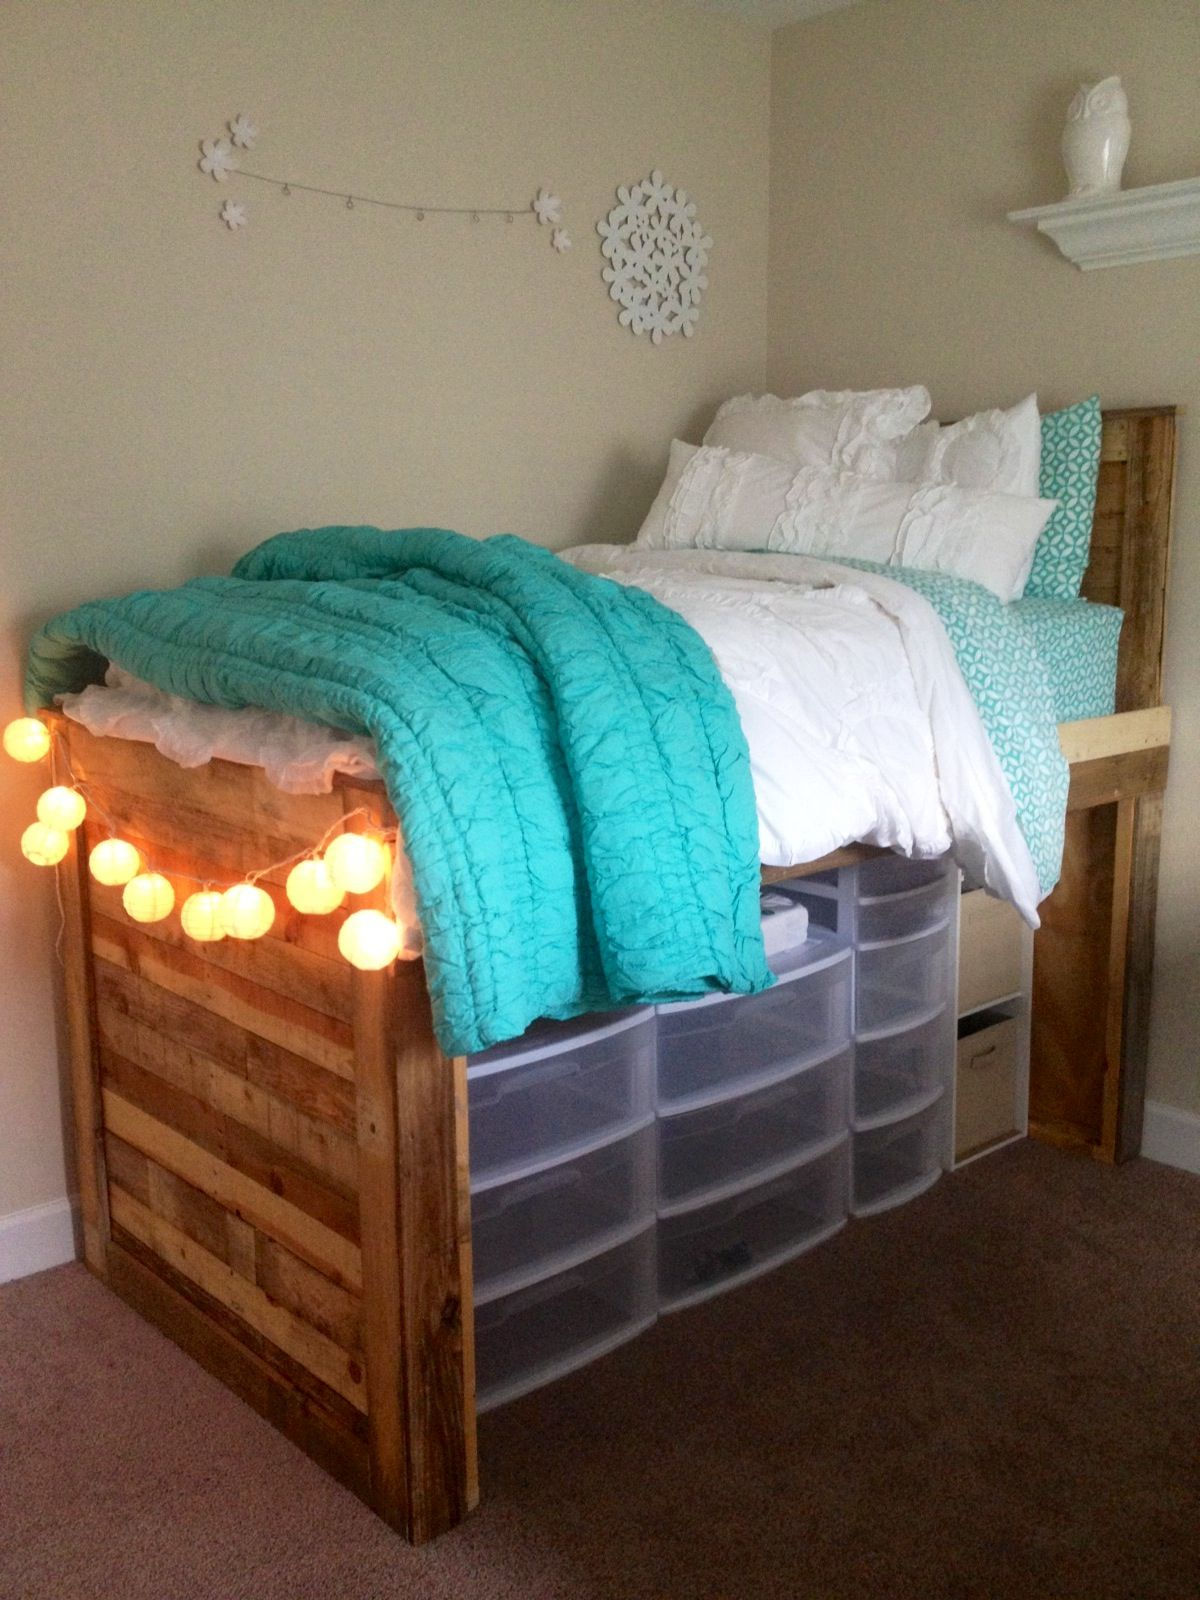 Ideas For Dorm Room: 10 Easy Ways To Save Space In Your Dorm Room